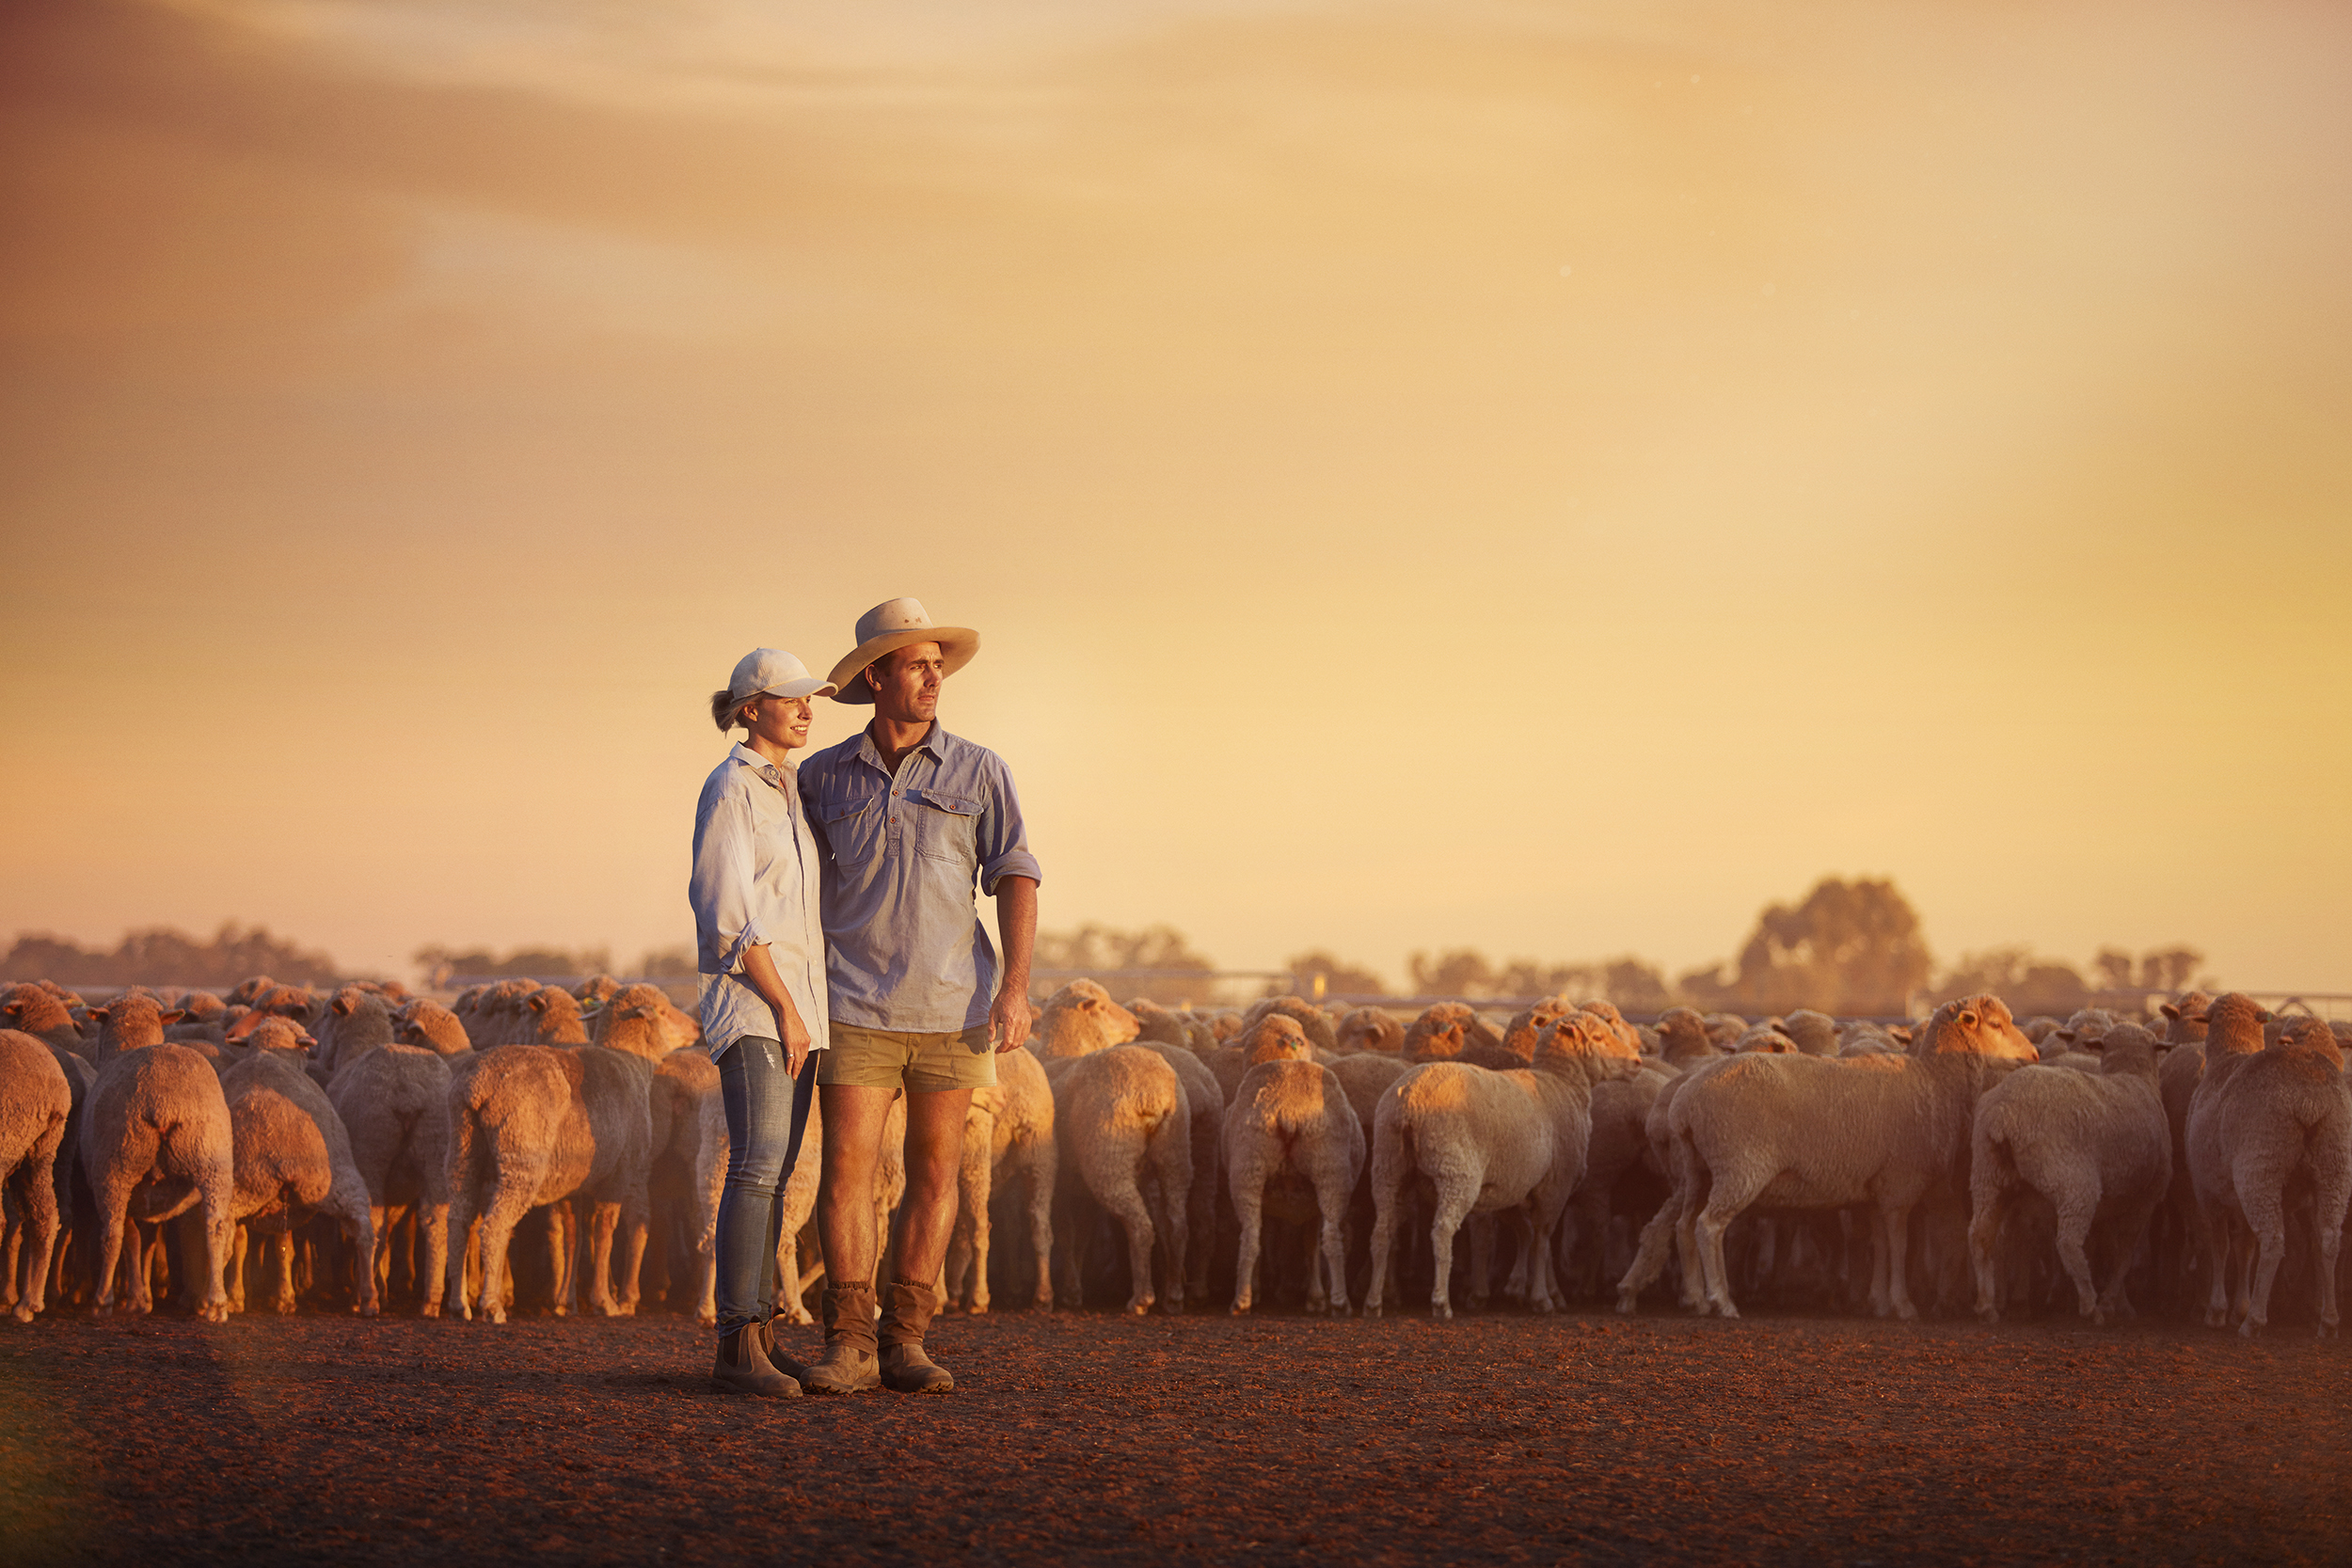 farmers-thom-rigney-professional-photographer-bayer-campaign-advertising-australia-001